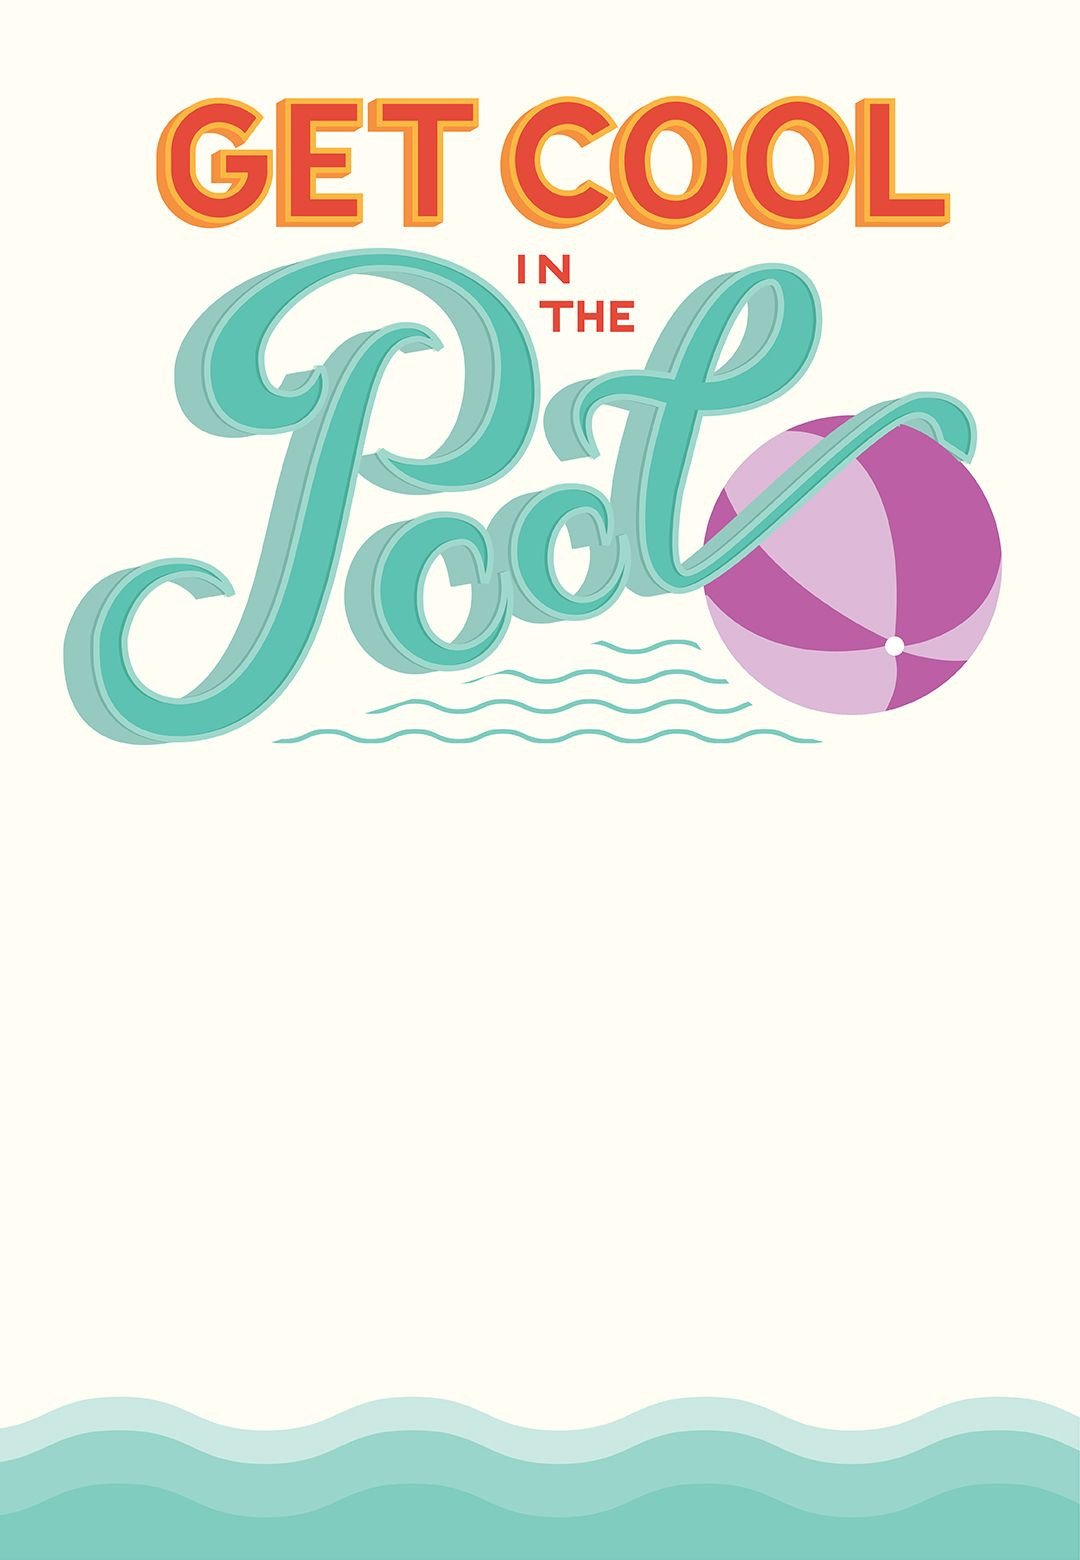 Printable Pool Party Invitations Pool Party Free Printable Party Invitation Template